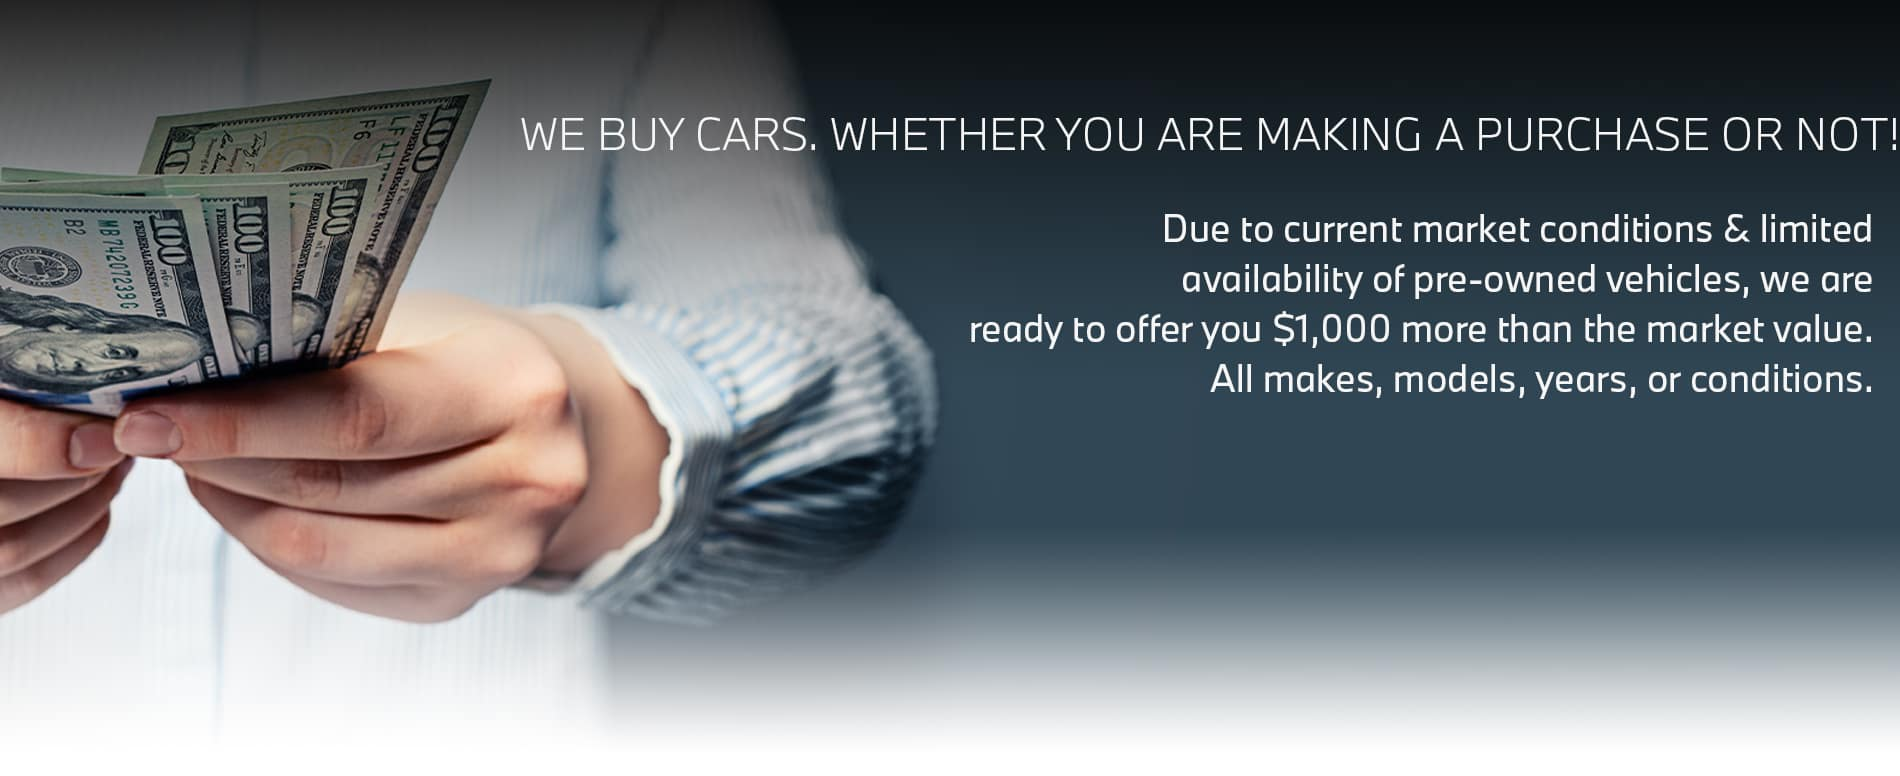 WE-BUY-CARS-WHETHER-YOU-BUY-FROM-US-OR-NOT